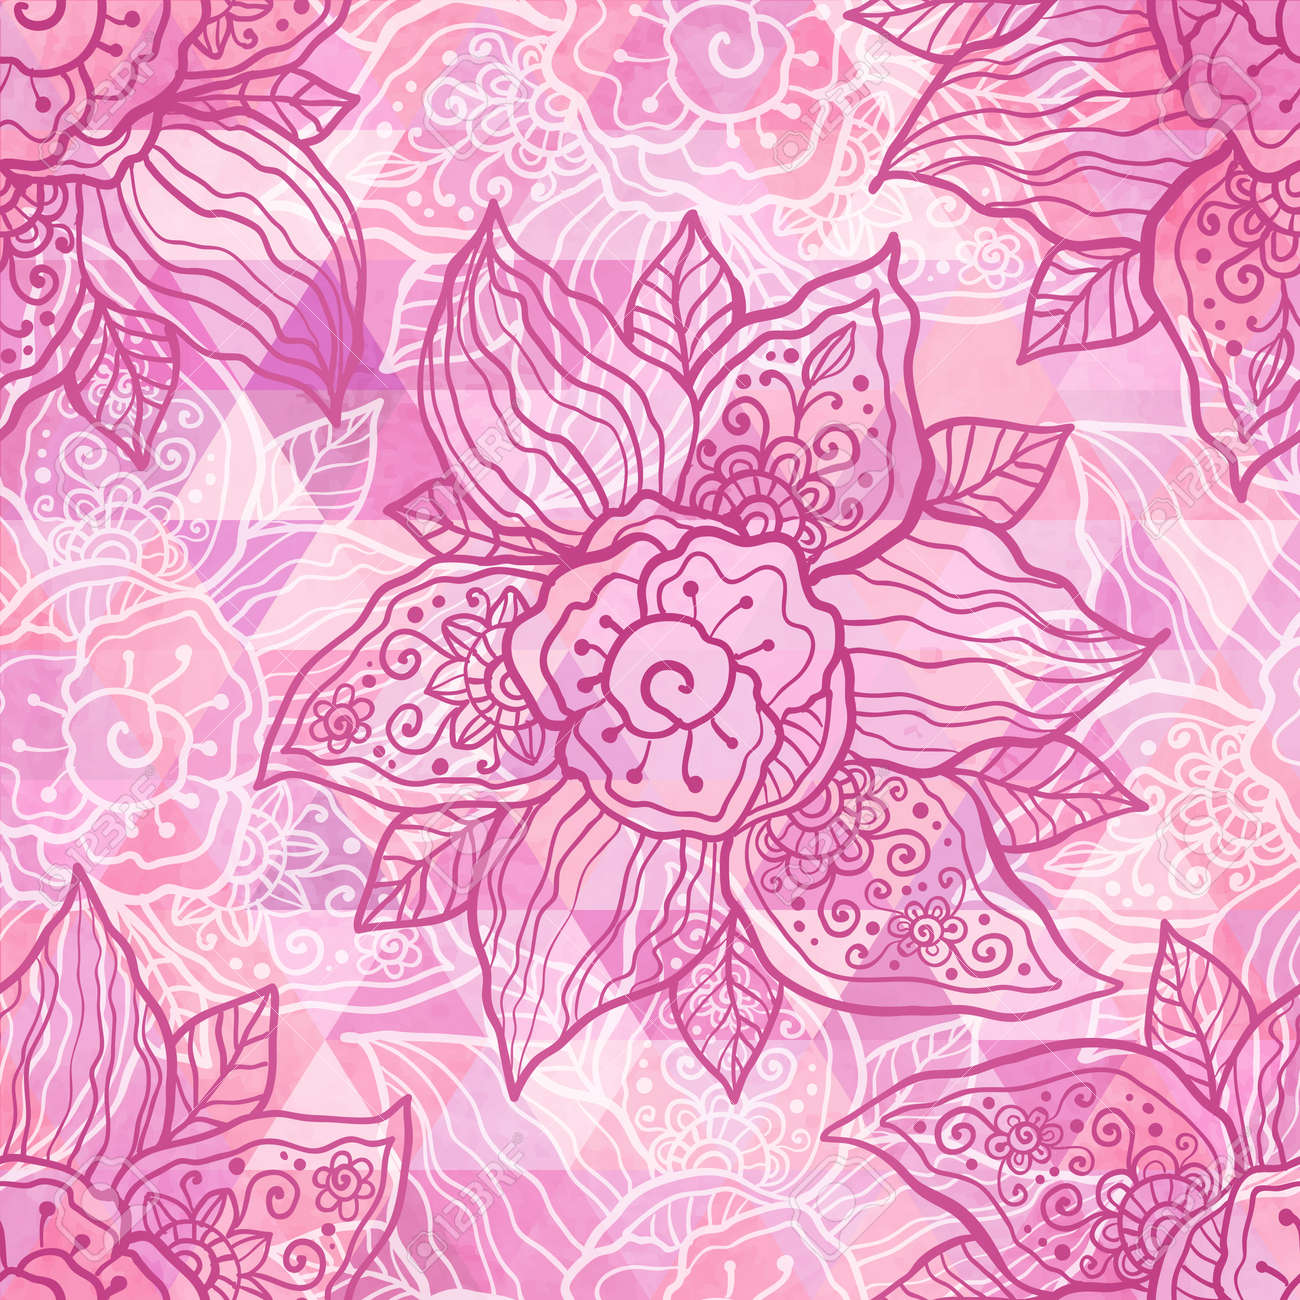 Vintage ornate vector flowers on grunge triangles background Stock Vector - 20722610